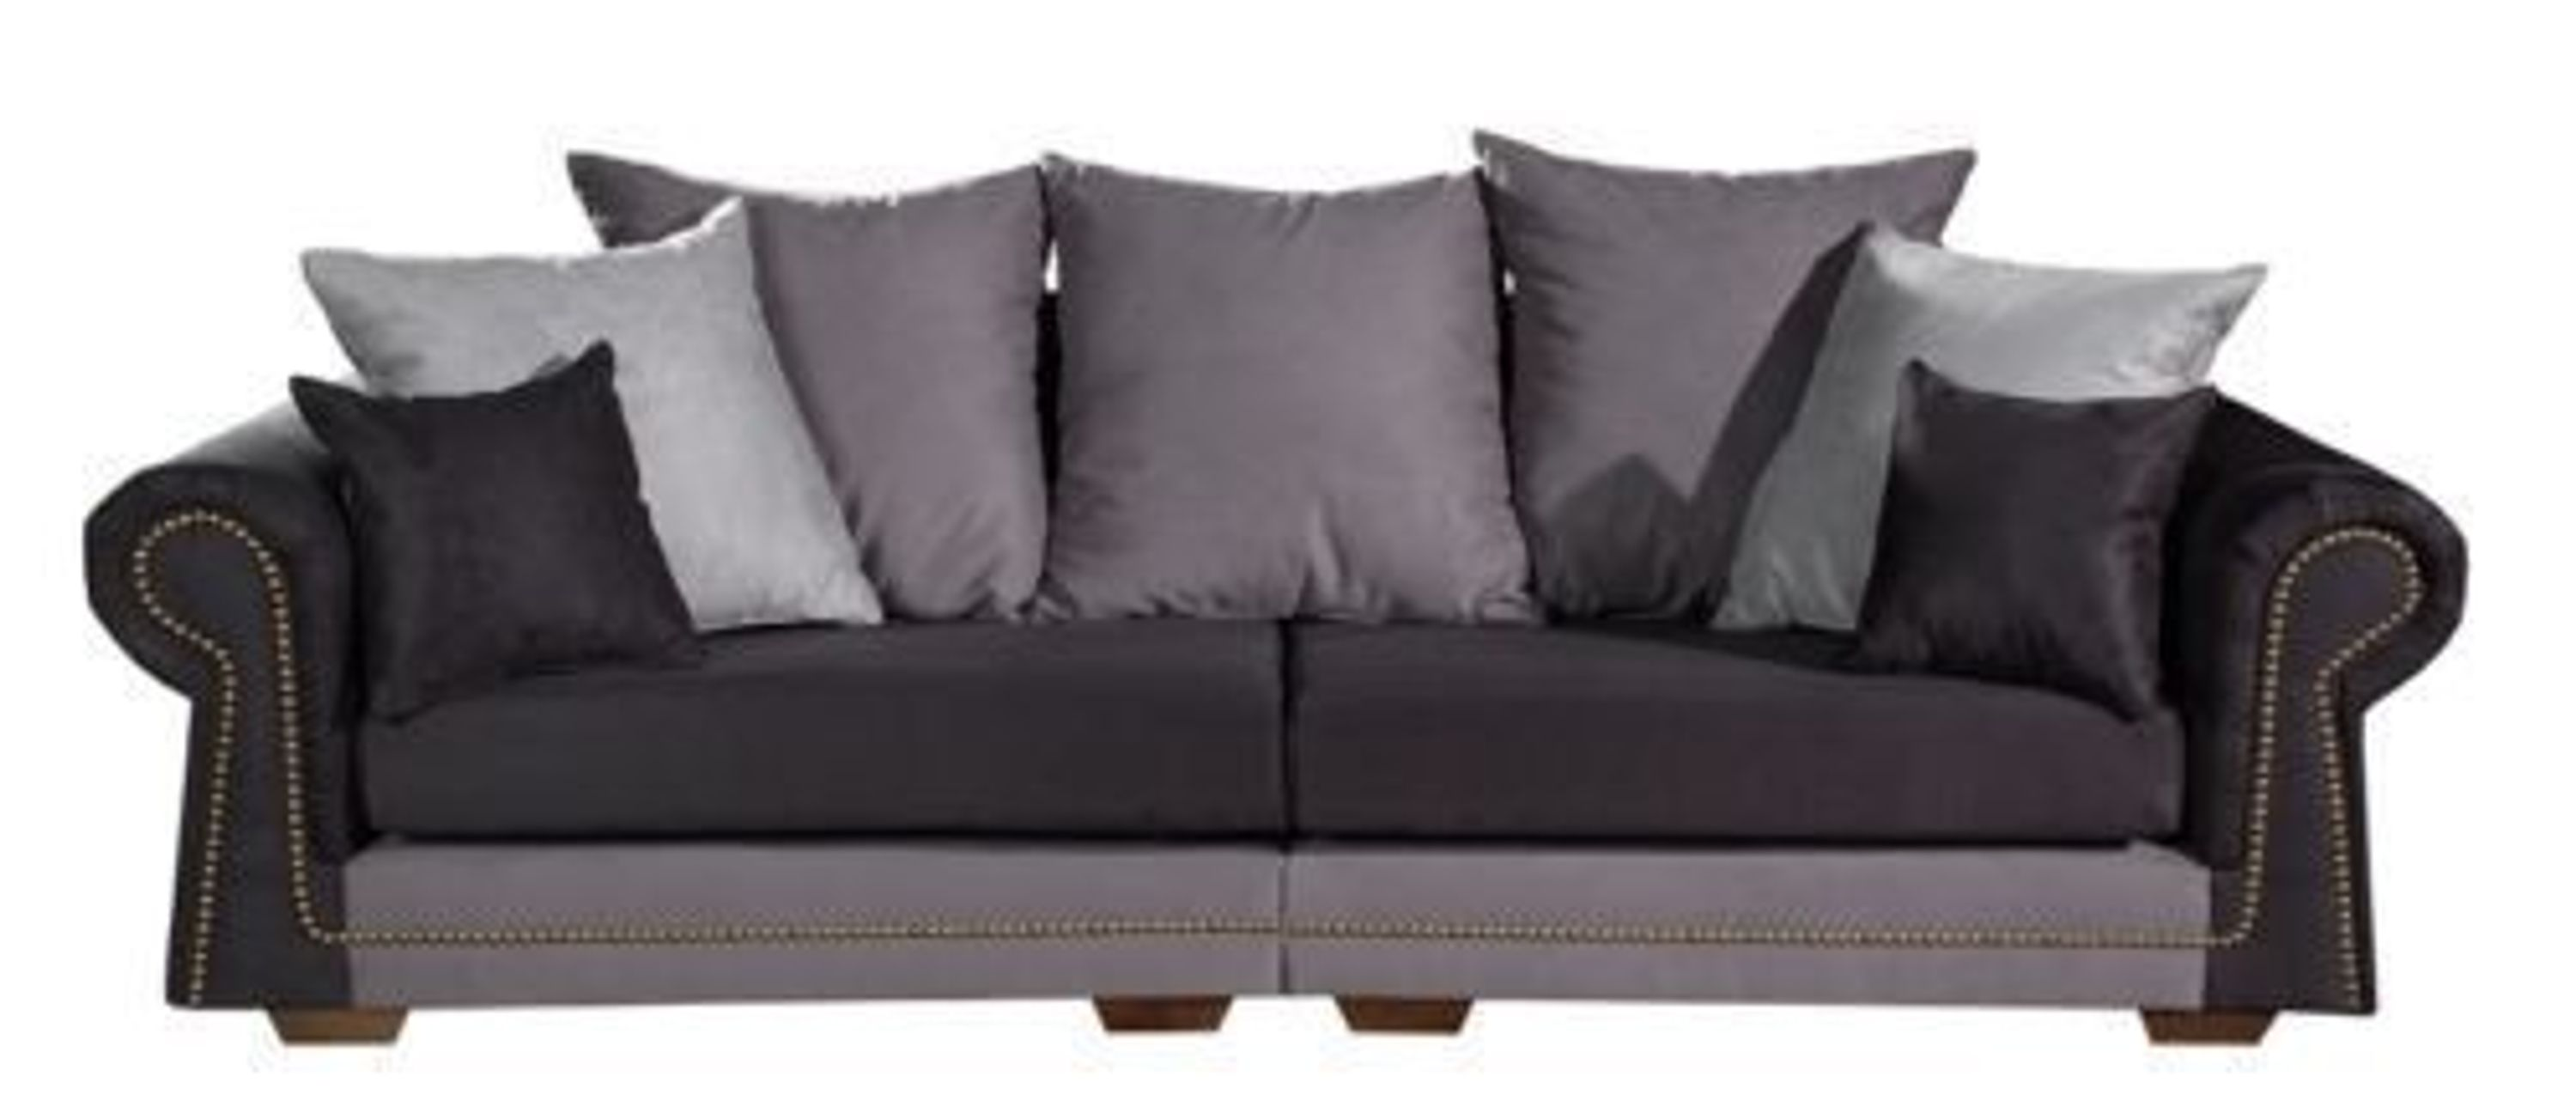 mega big k ln 3er sofa im kolonialstyle in alcantara kaufen bei. Black Bedroom Furniture Sets. Home Design Ideas